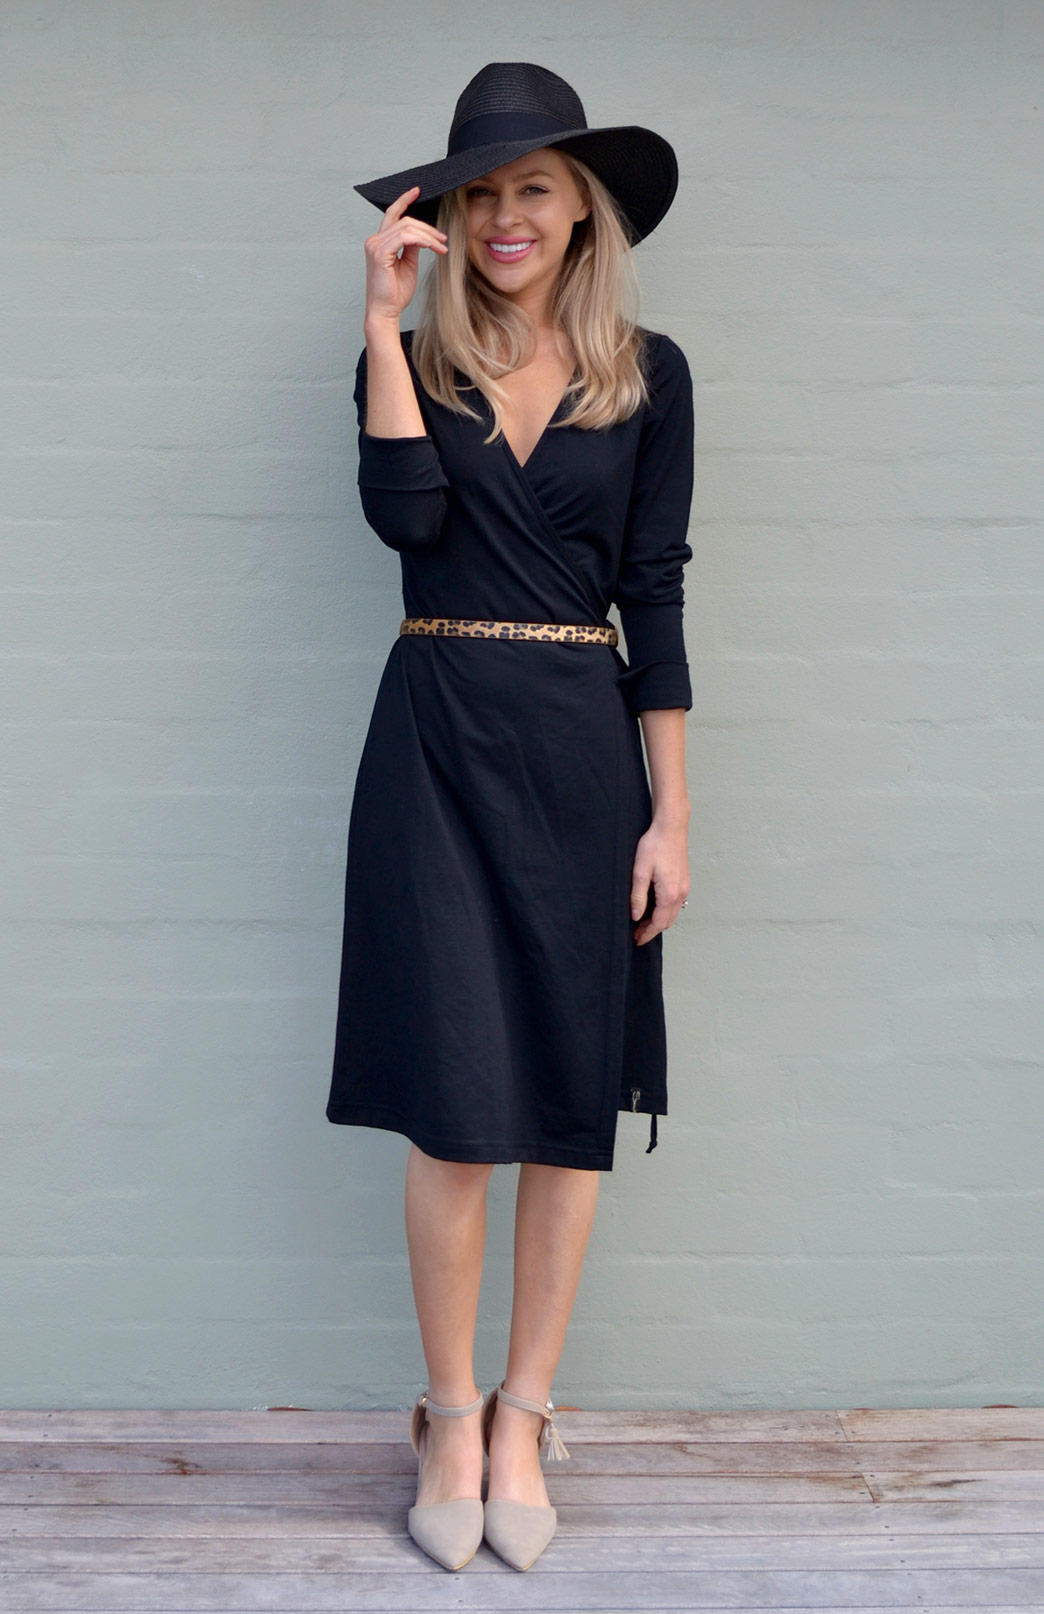 Wrap Dress - Long Sleeved - Women's Black Merino Wool Long Sleeved Wrap Dress with adjustable ties - Smitten Merino Tasmania Australia